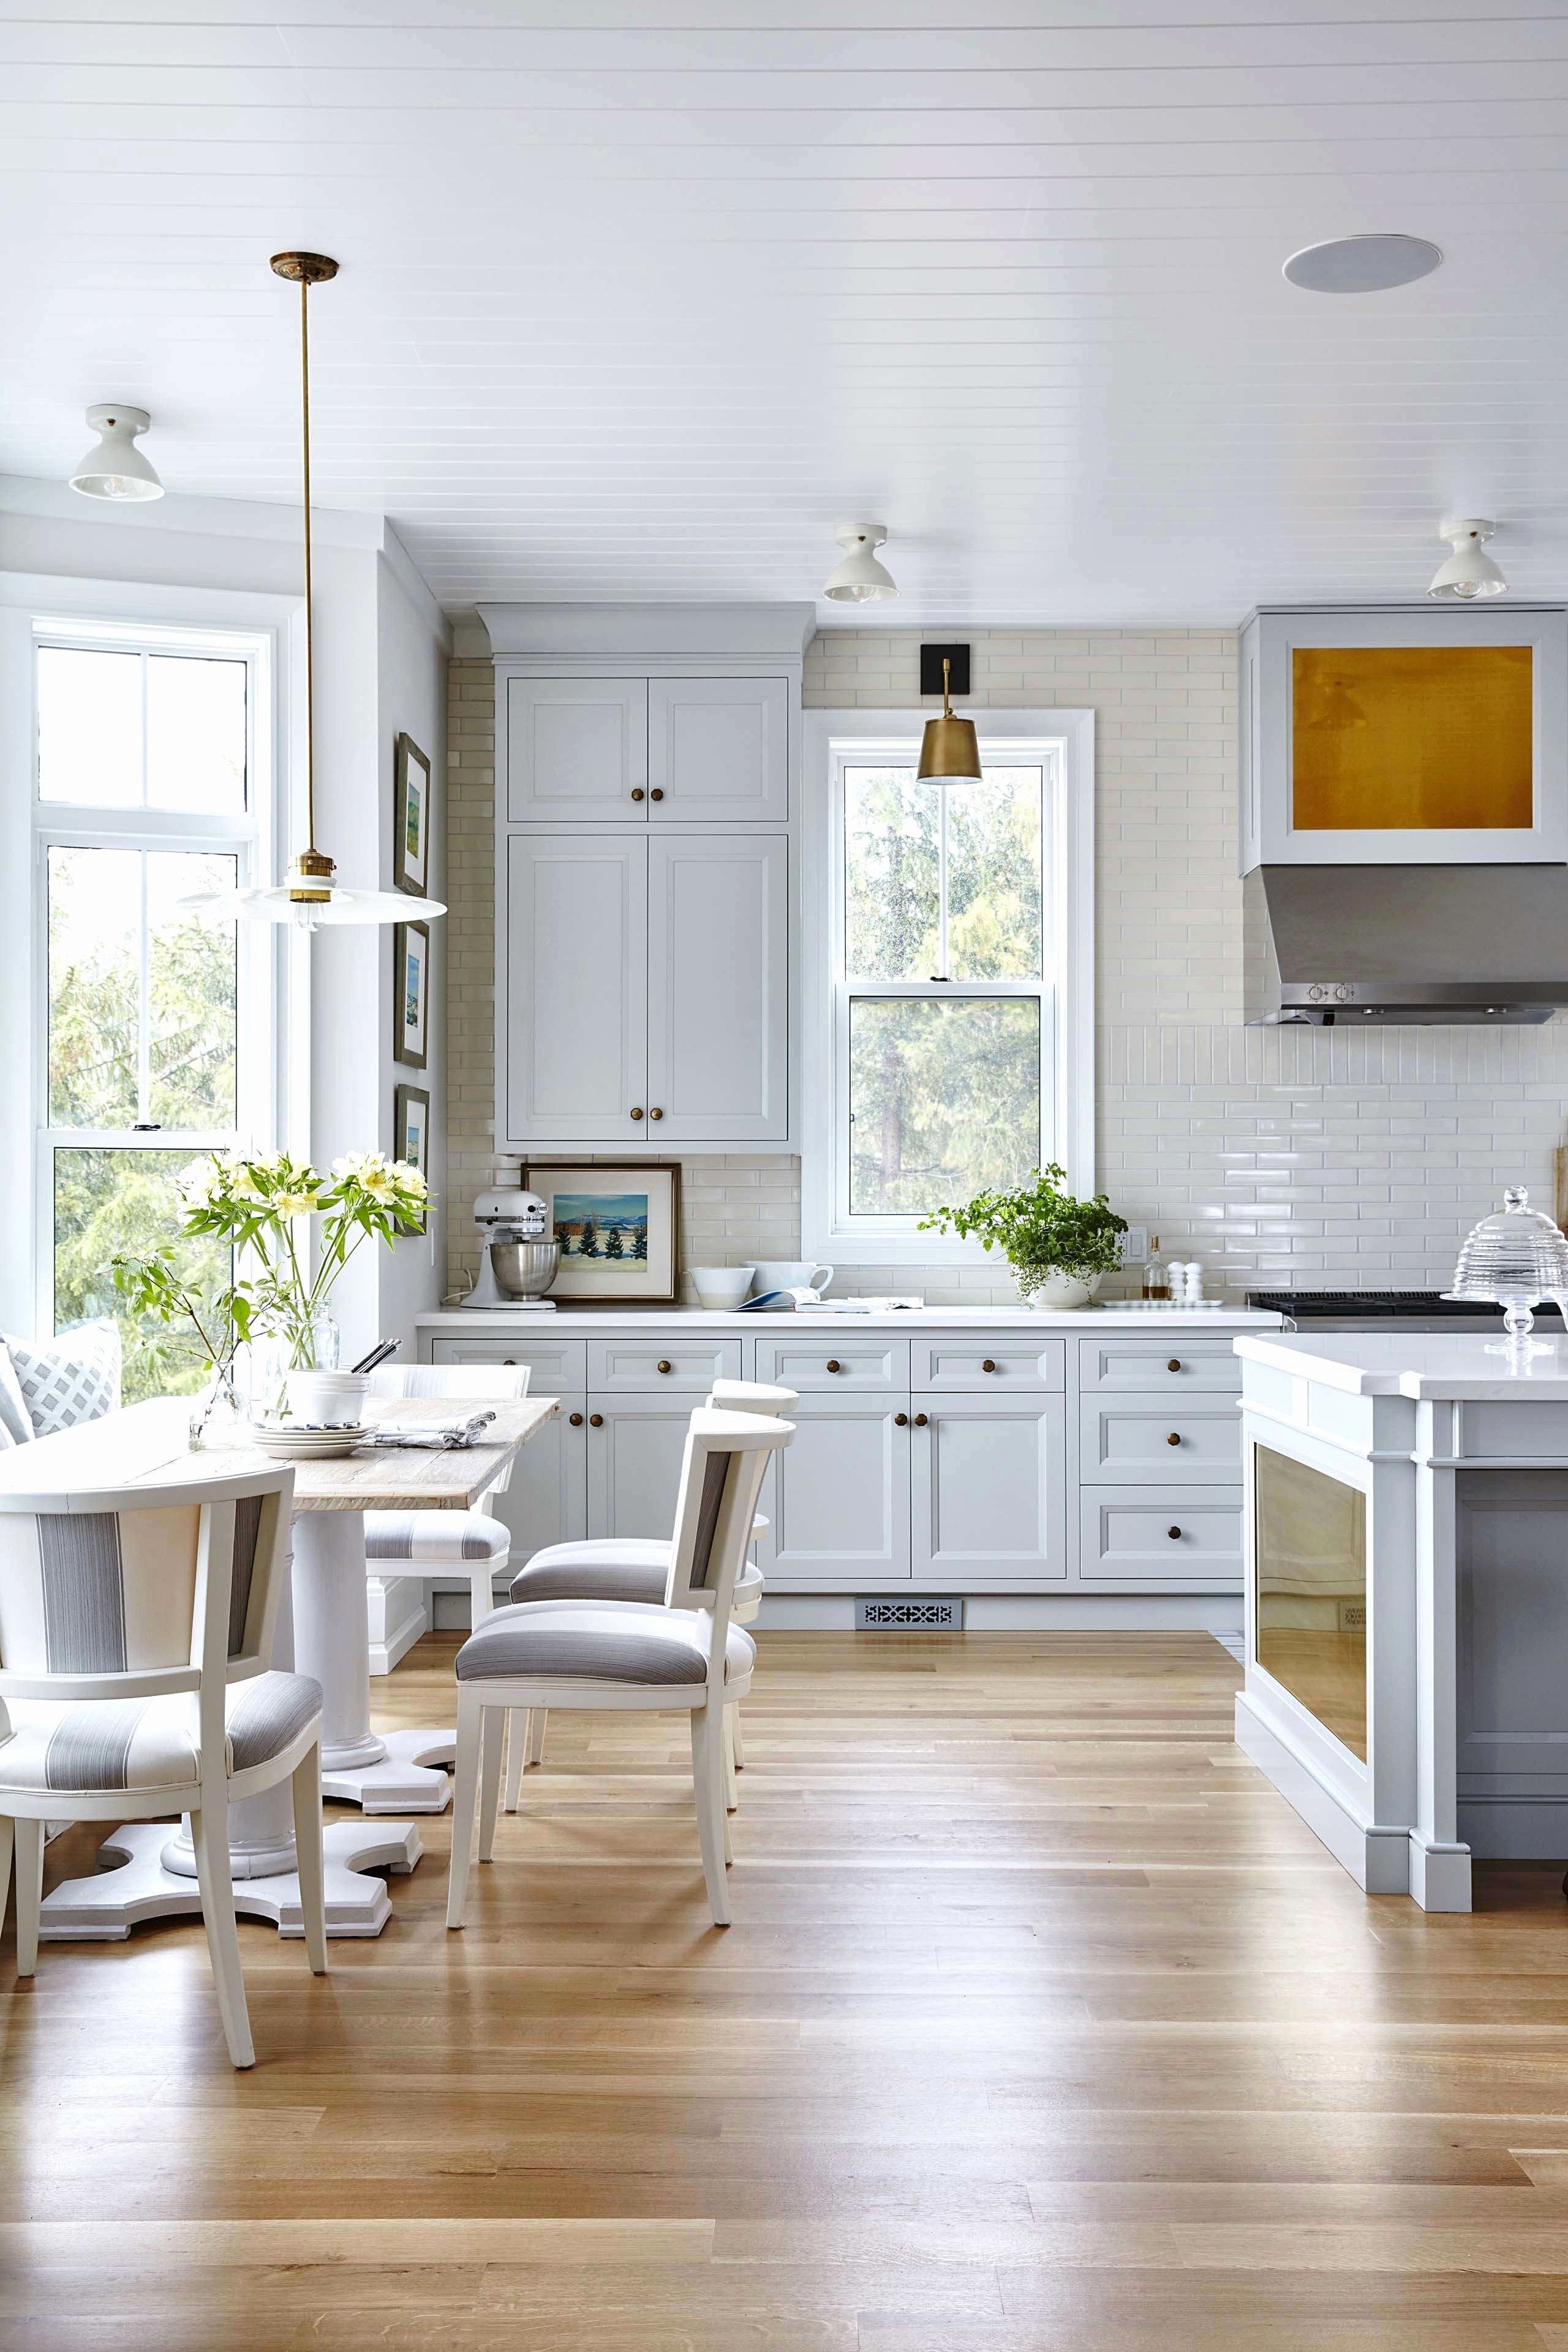 can you put hardwood floors in kitchen of kitchen colors with white cabinets elegant kitchen with wood floors throughout kitchen colors with white cabinets inspirational kitchen joys kitchen joys kitchen 0d kitchens design ideas